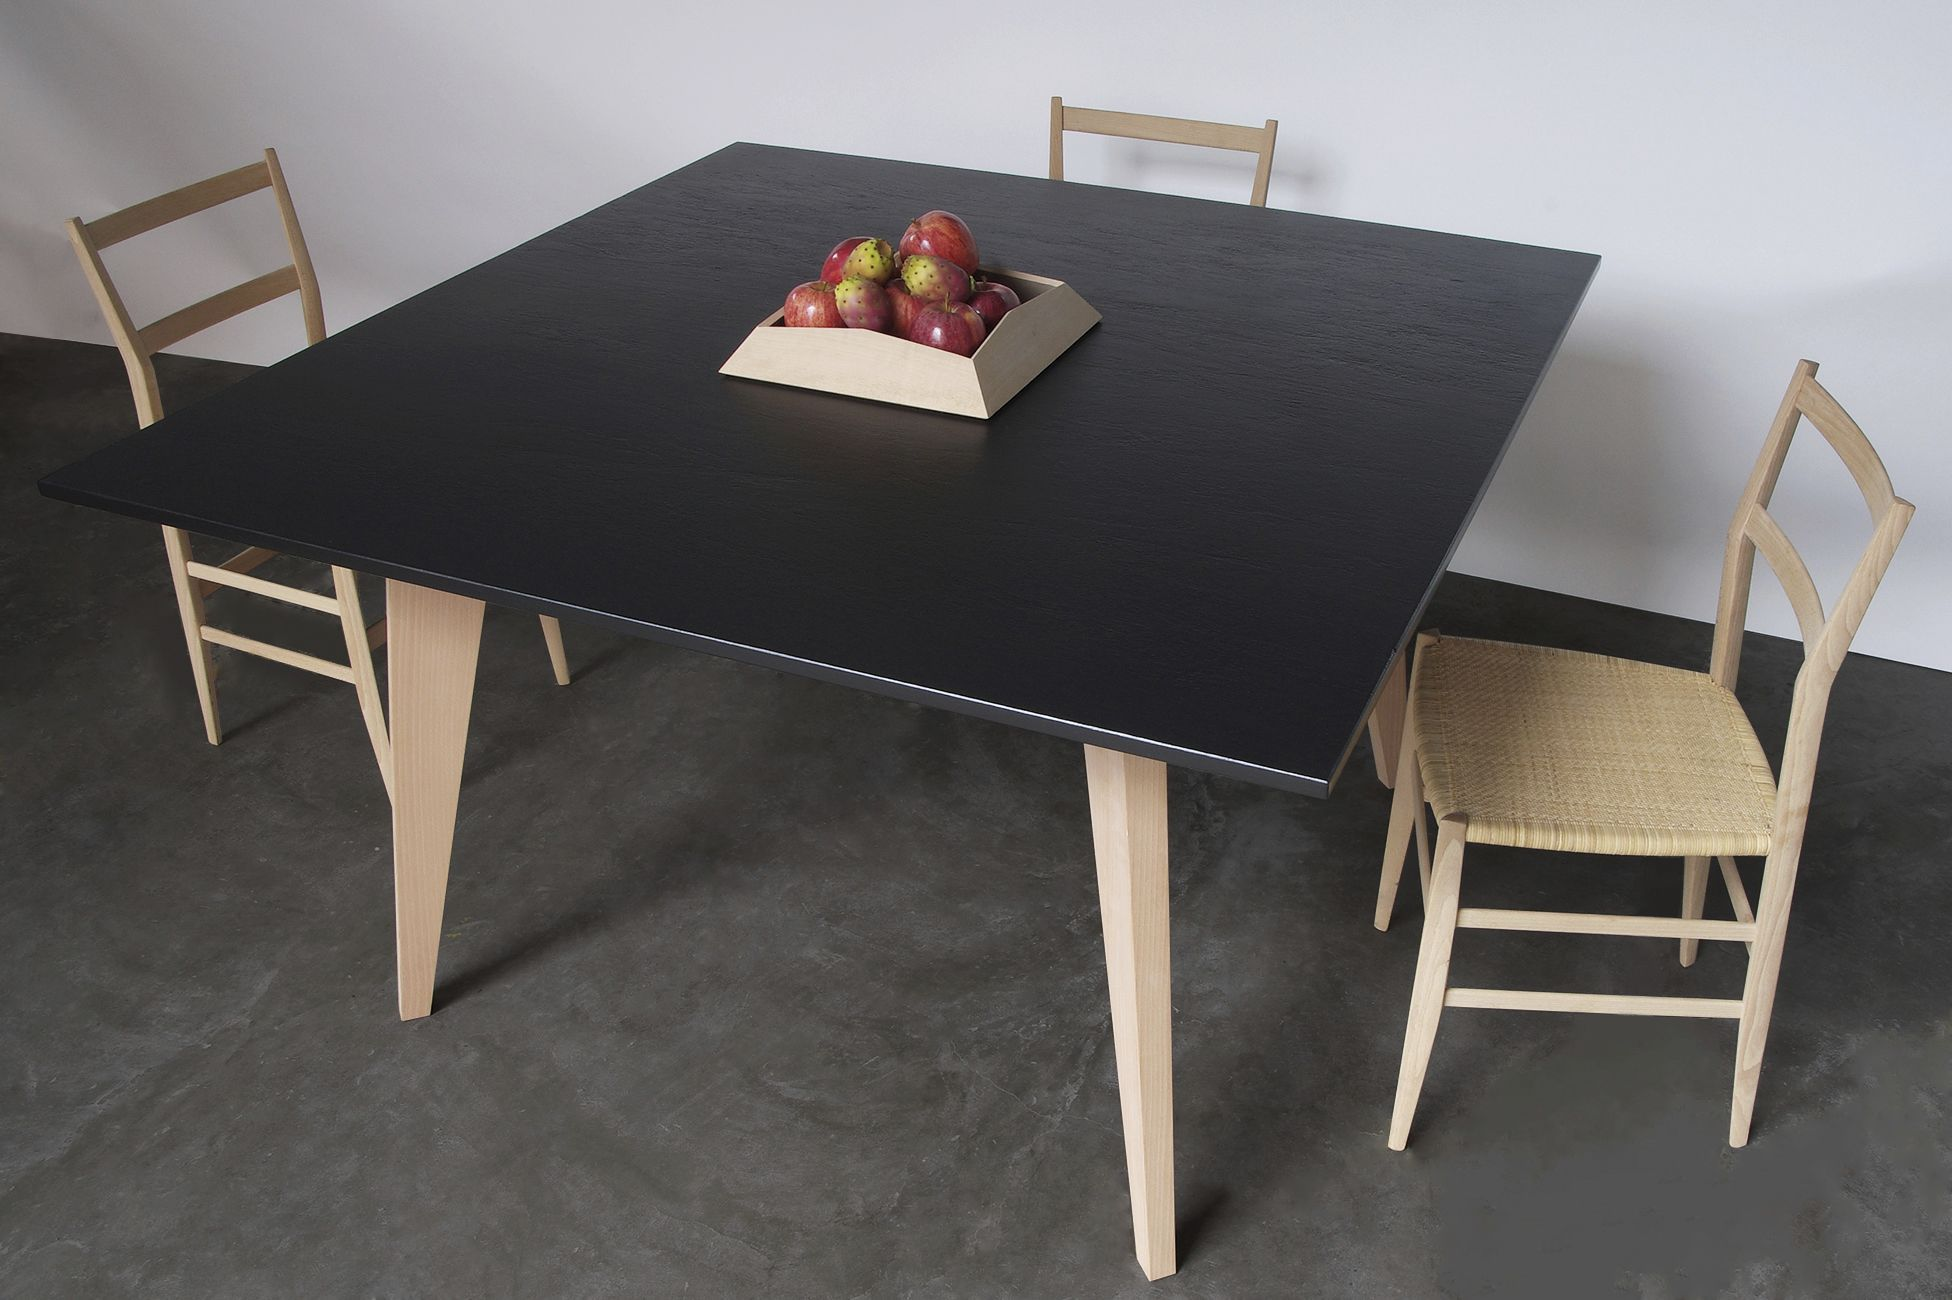 ... Contemporary Dining Table / Slate / Rectangular / For Restaurants TABLE  TOP ITALIAN SLATE NATURAL CLEFT ...